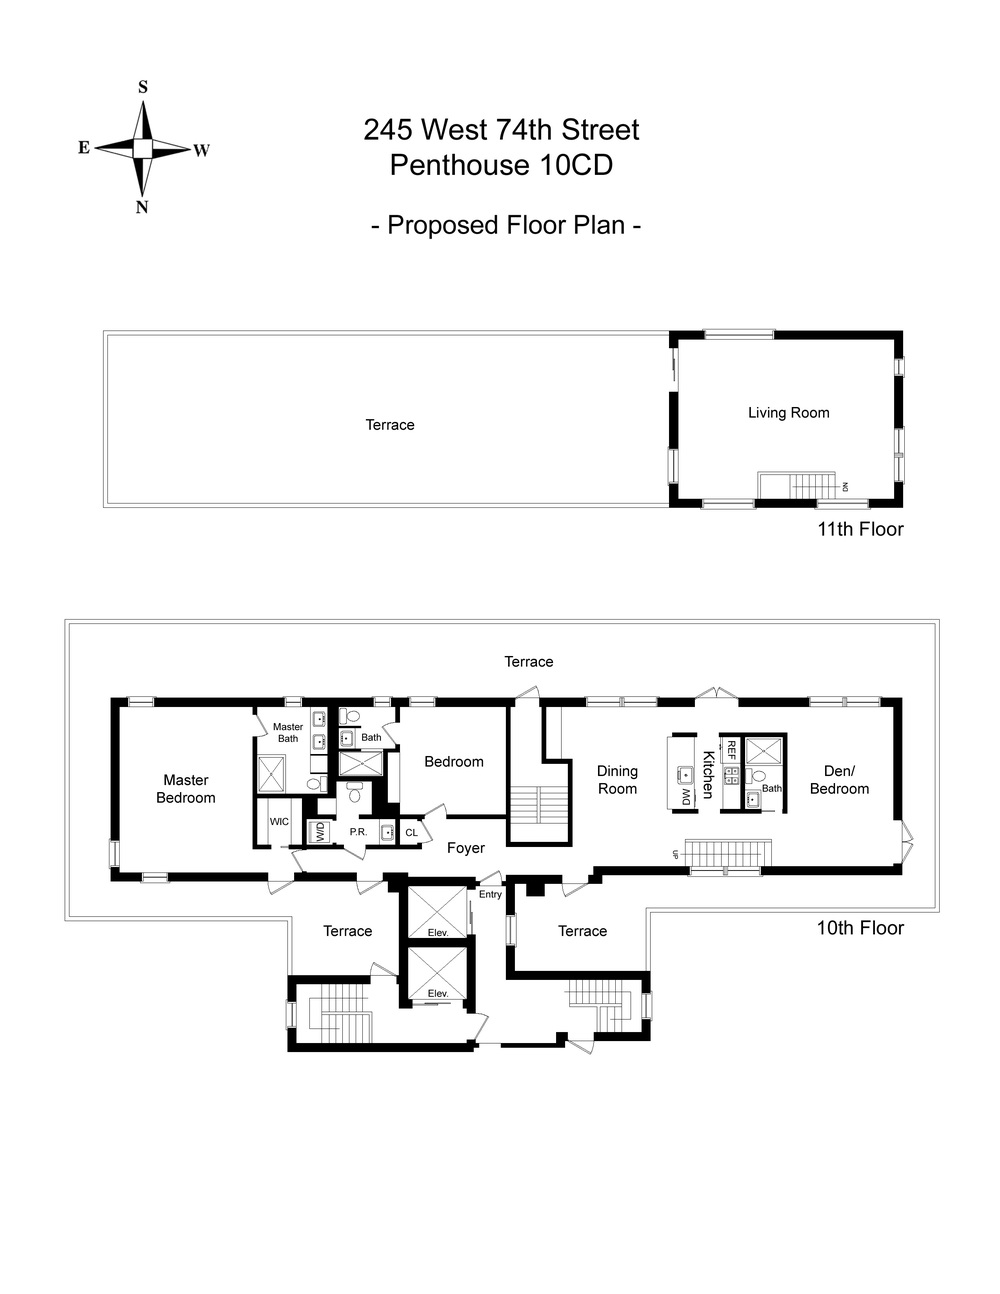 Proposed Floorplan_245 West 74th Street, PH10CD.jpg